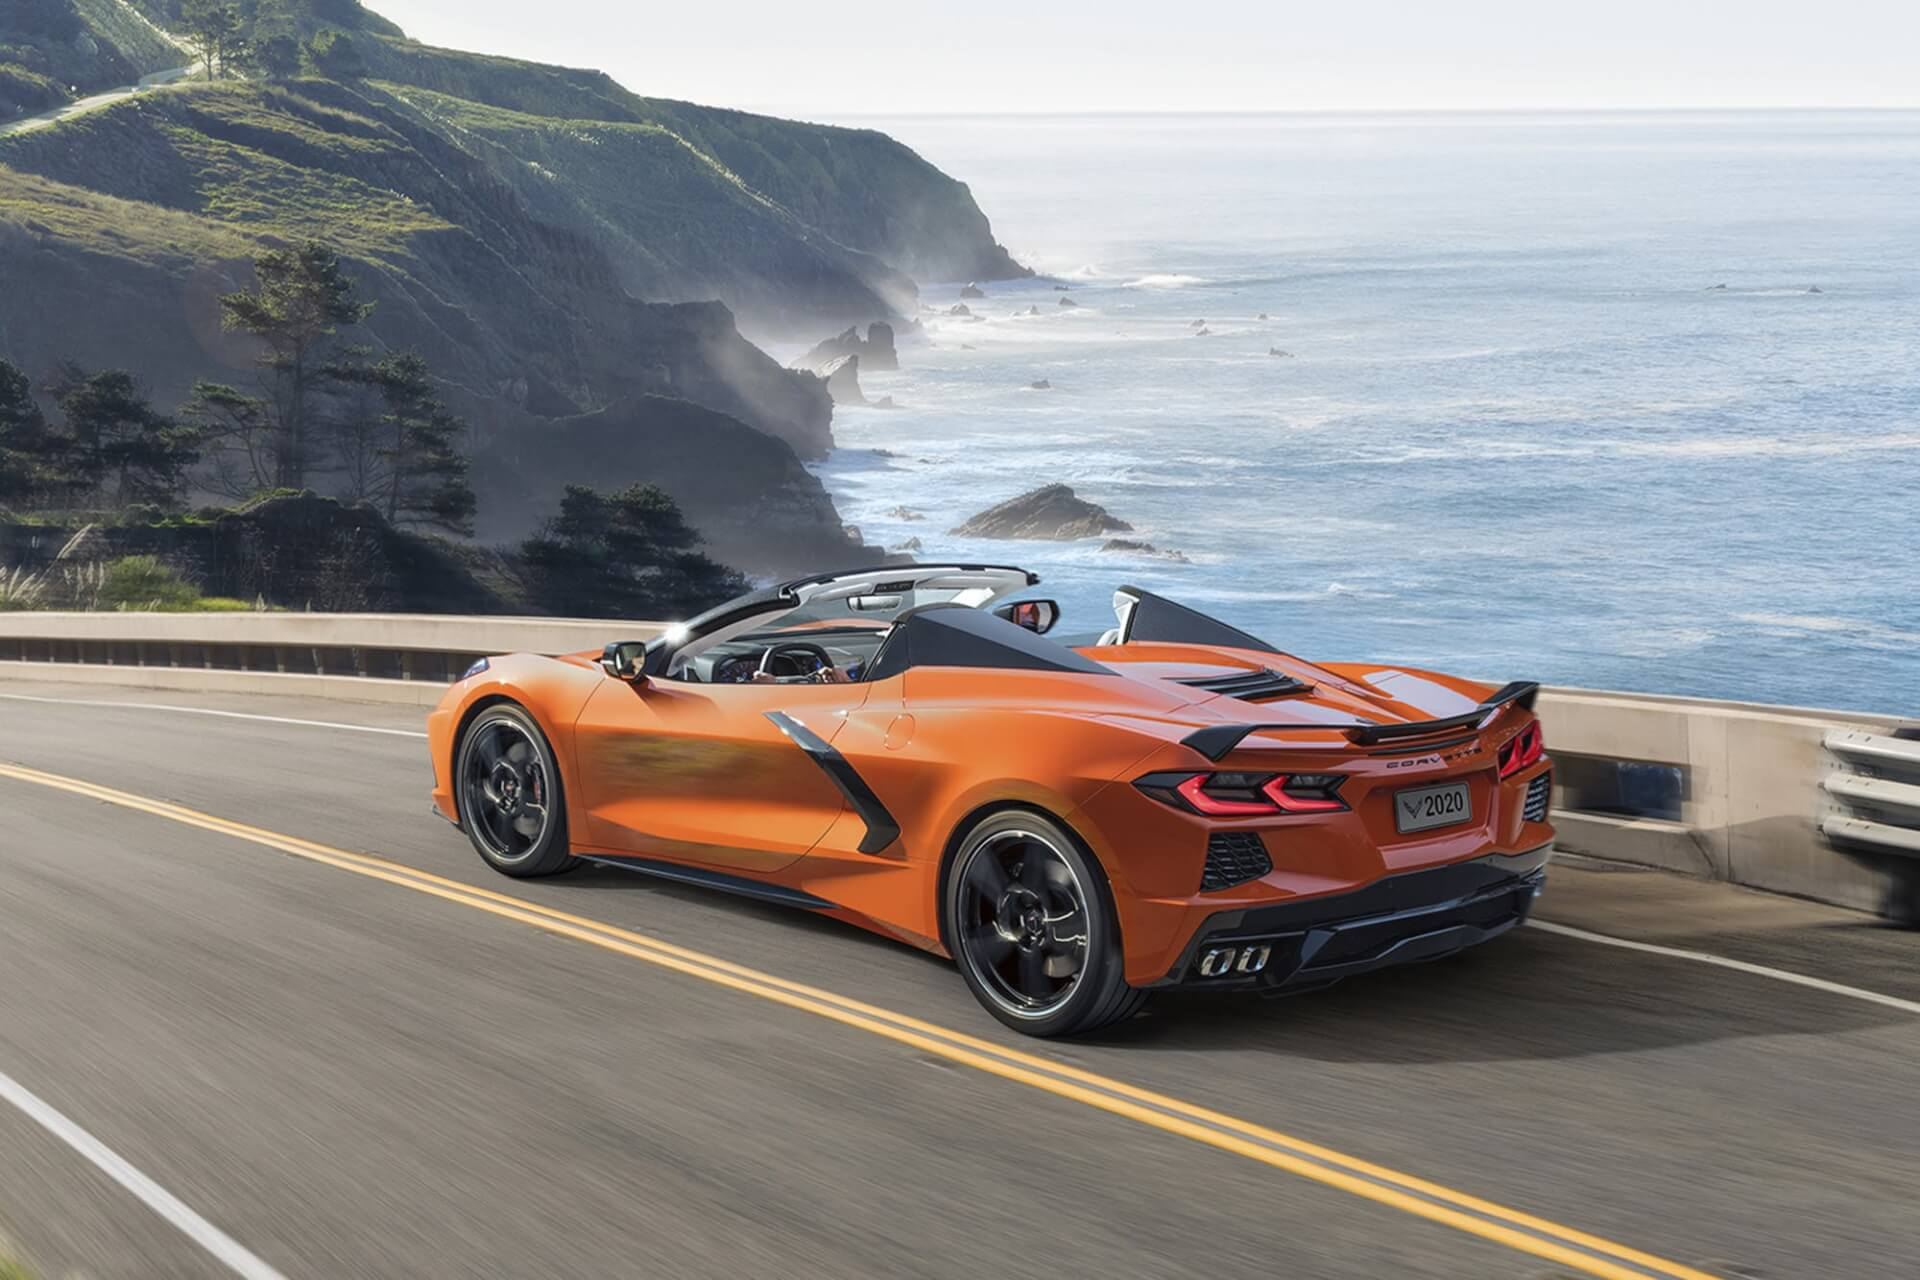 Sexy Corvette C8 — Superstar Sports Car of 2020